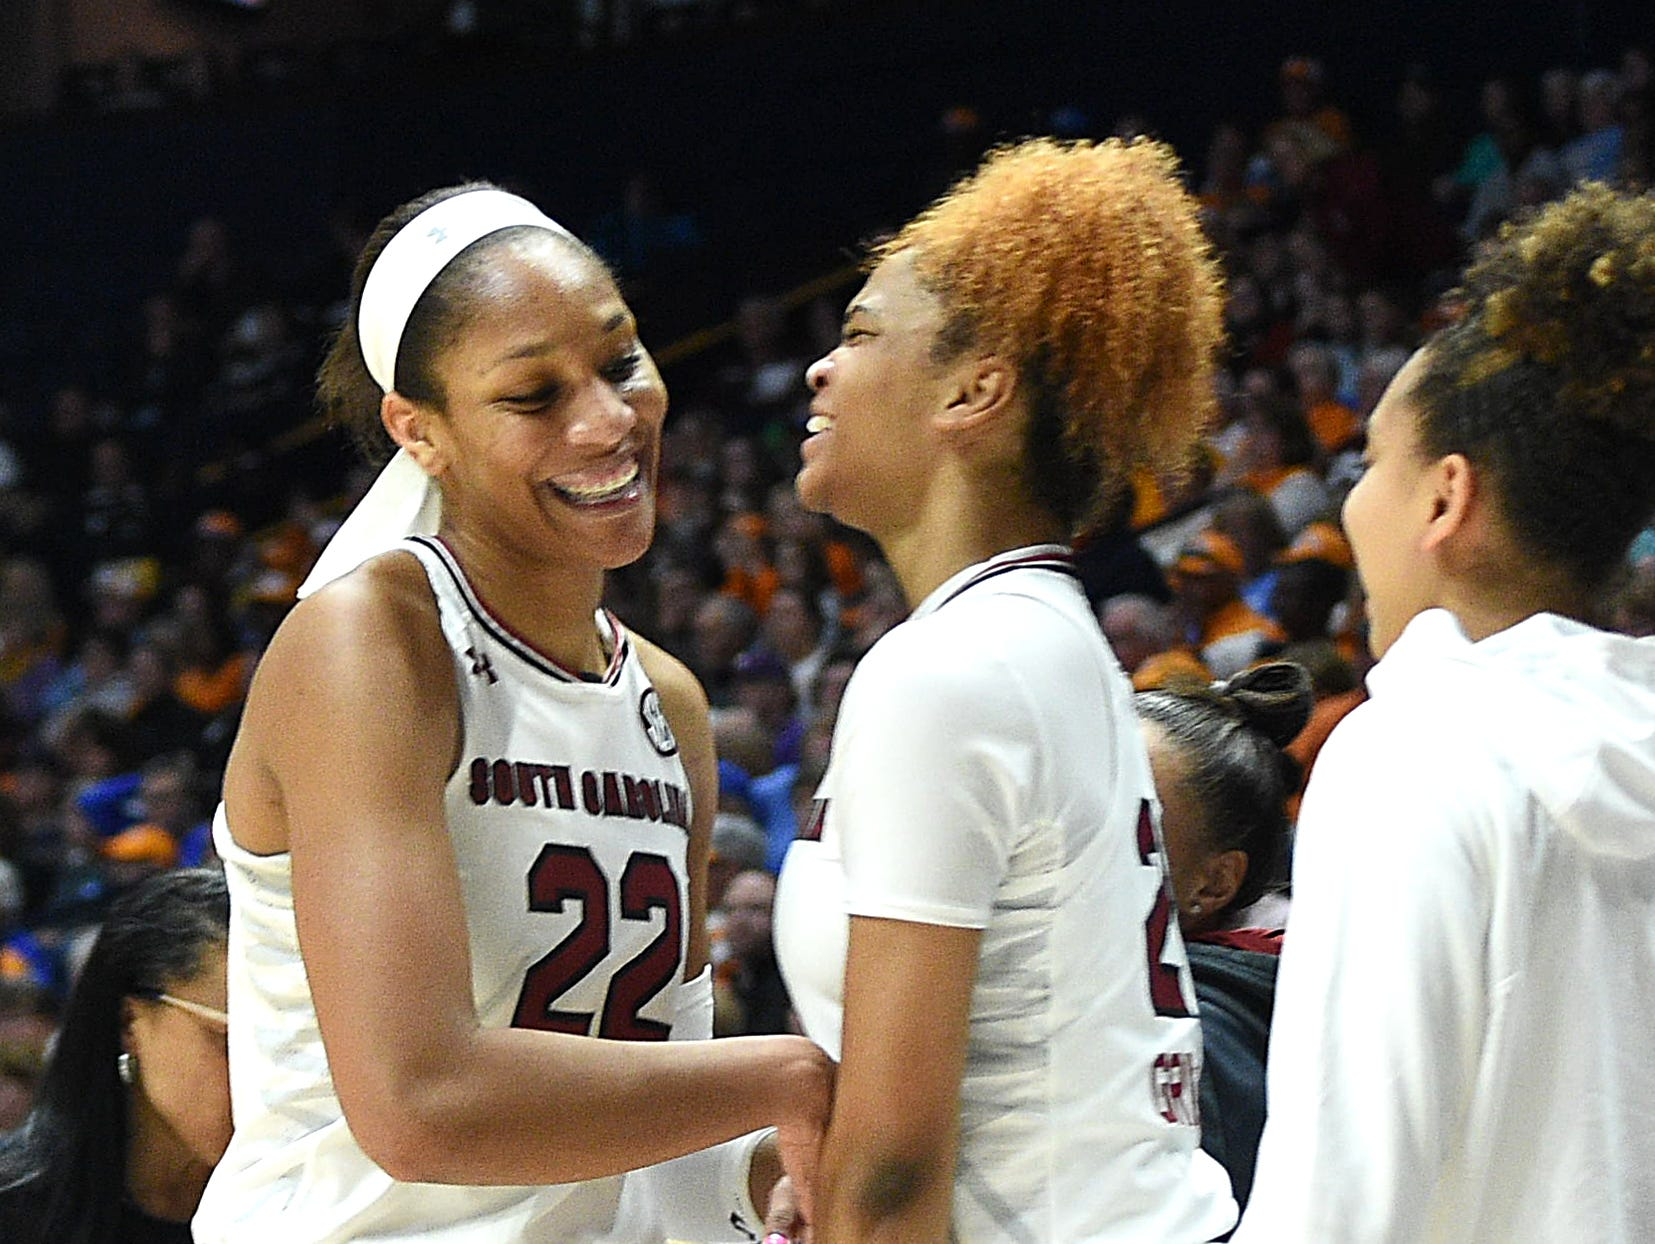 South Carolina Gamecocks forward A'ja Wilson (22) celebrates with team mates in the final minutes of a game against Tennessee against during the quarterfinals at the 2018 SEC Women's Basketball Tournament at Bridgestone Arena in Nashville on Thursday, March 2, 2018.